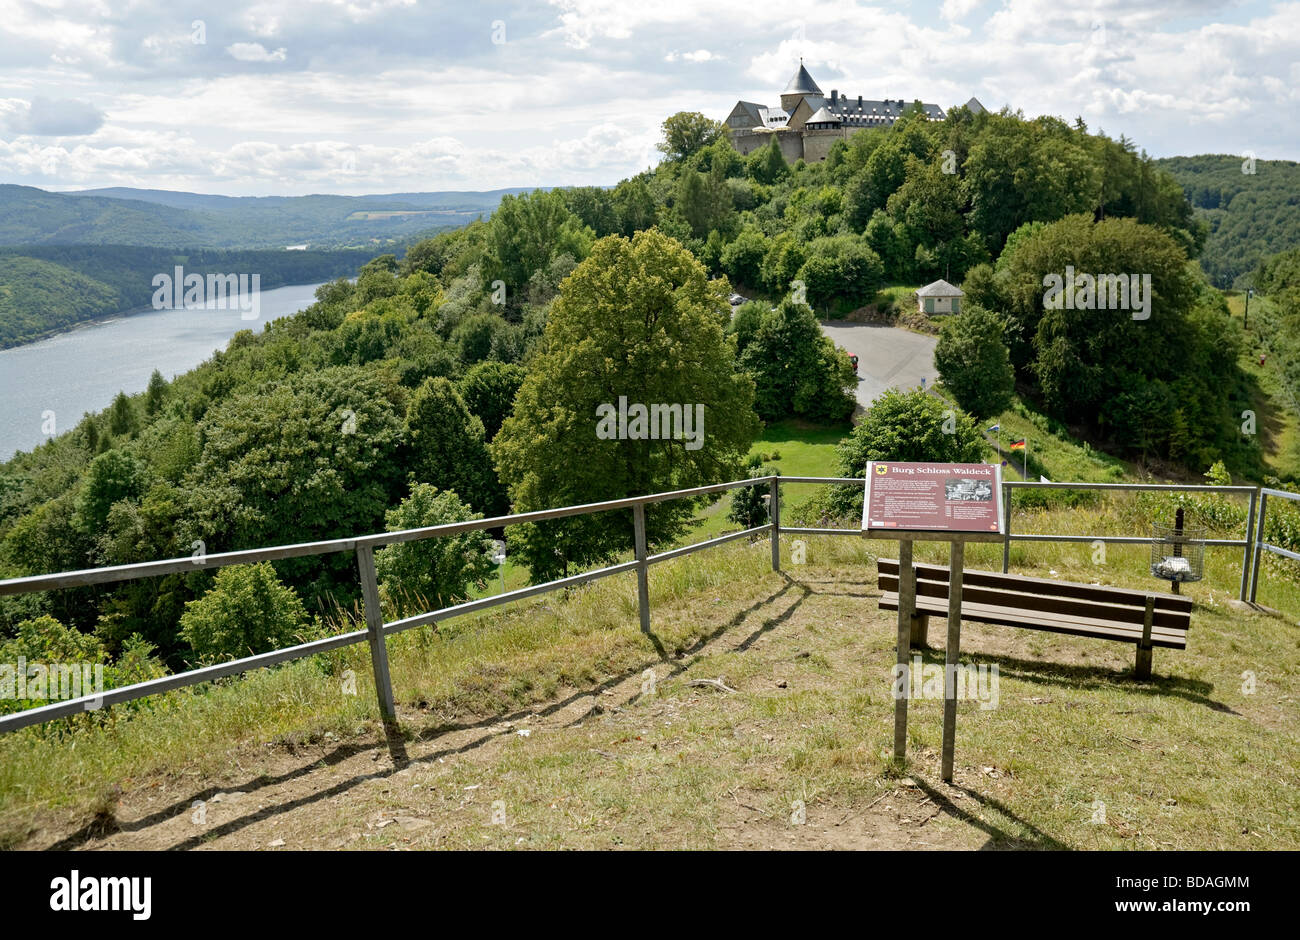 Schloss  Waldeck overlooking Edersee lake Hesse, Germany. - Stock Image